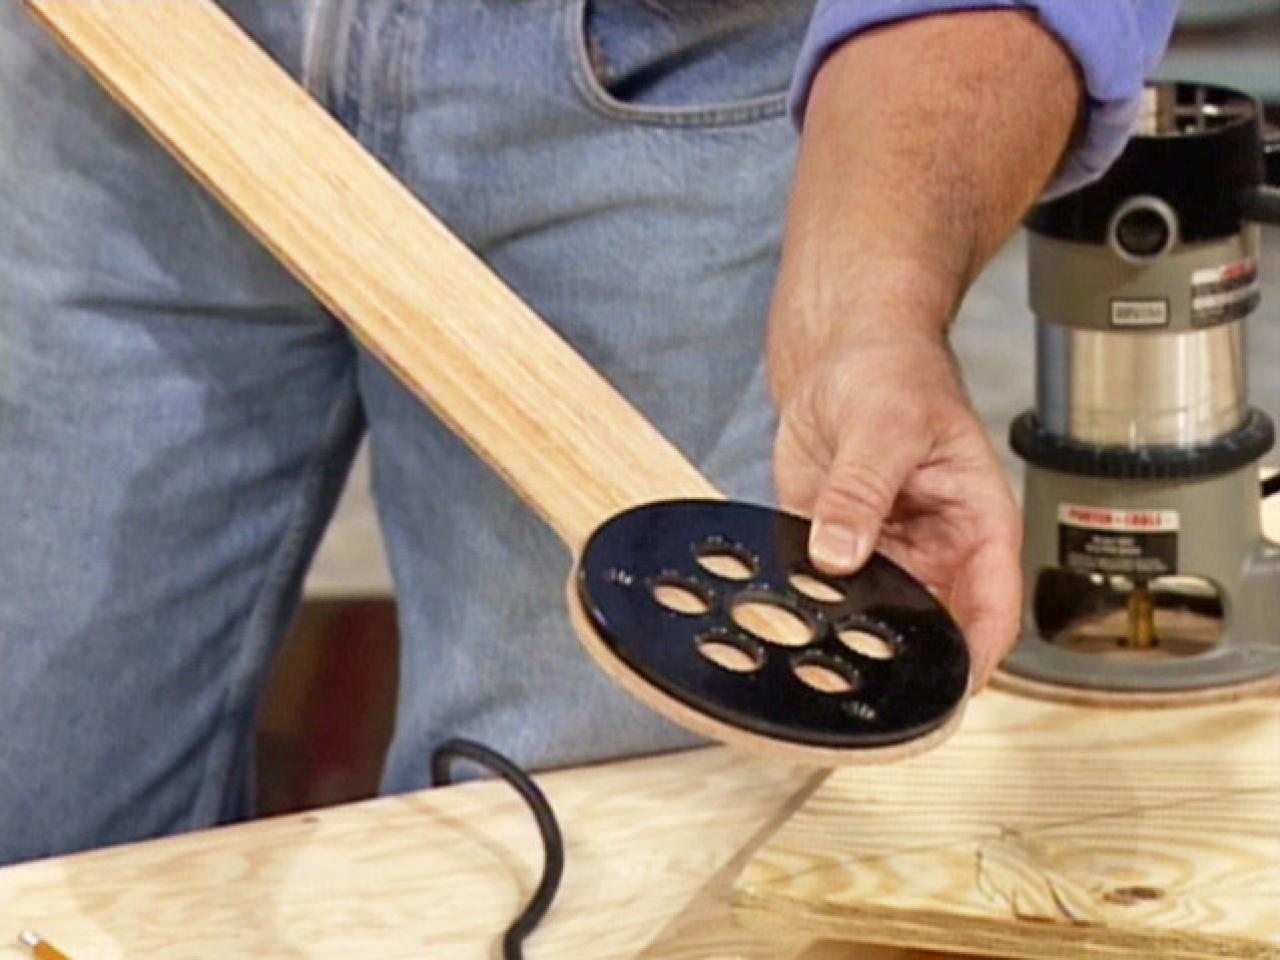 How To Cut A Perfect Circle In Wood With A Dremel